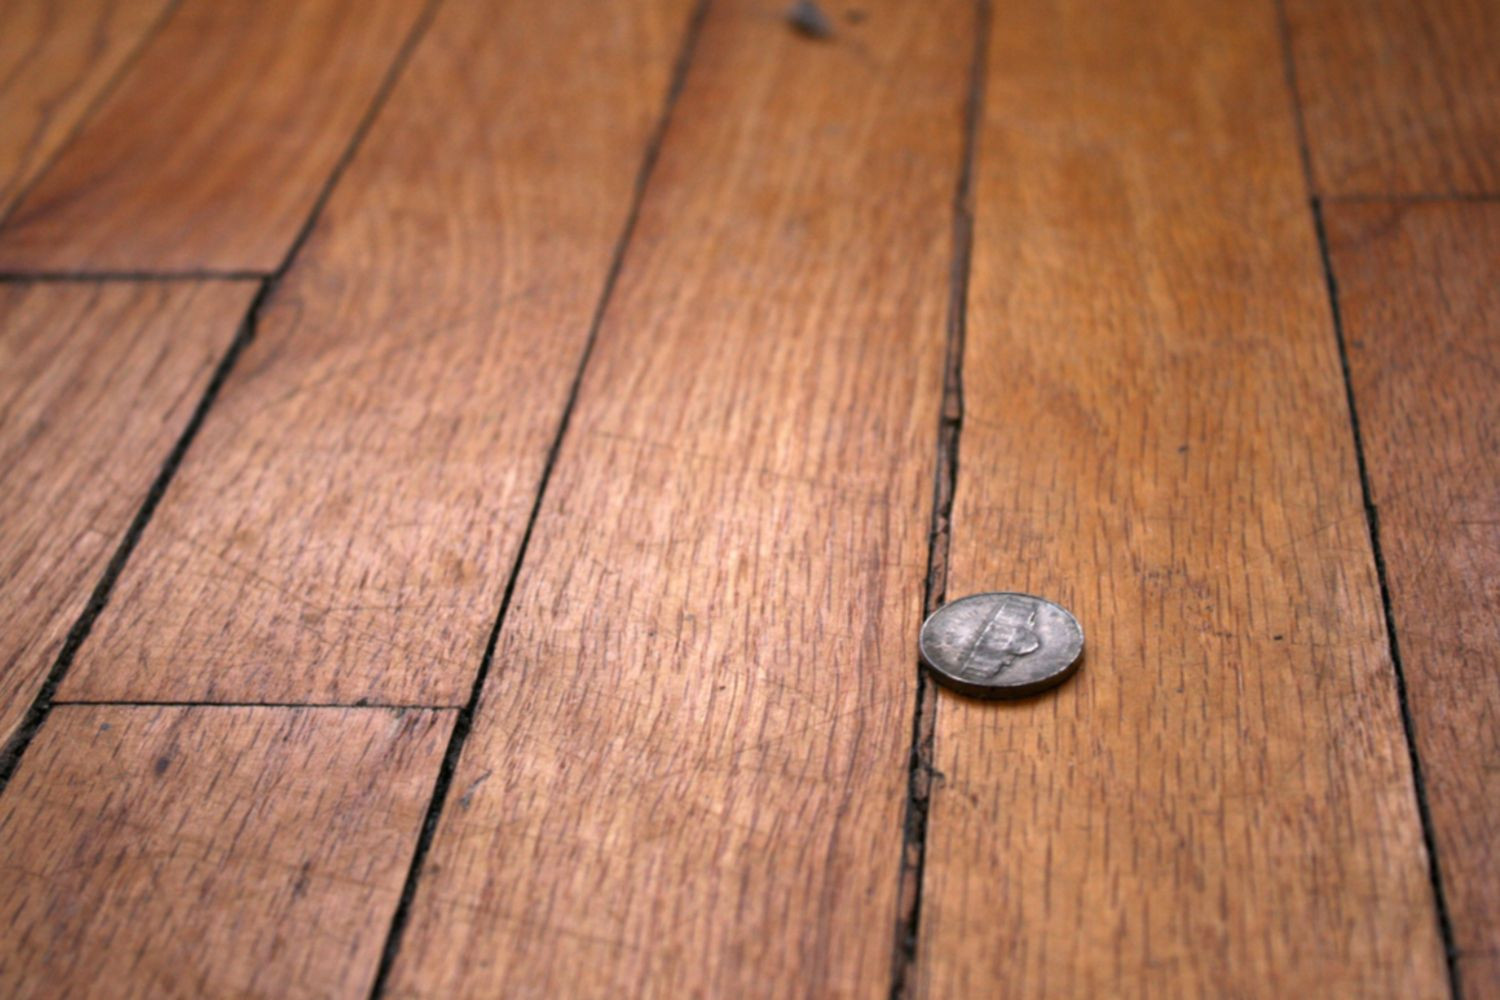 how to refinish hardwood floors that have been painted of how to repair gaps between floorboards throughout wood floor with gaps between boards 1500 x 1000 56a49eb25f9b58b7d0d7df8d